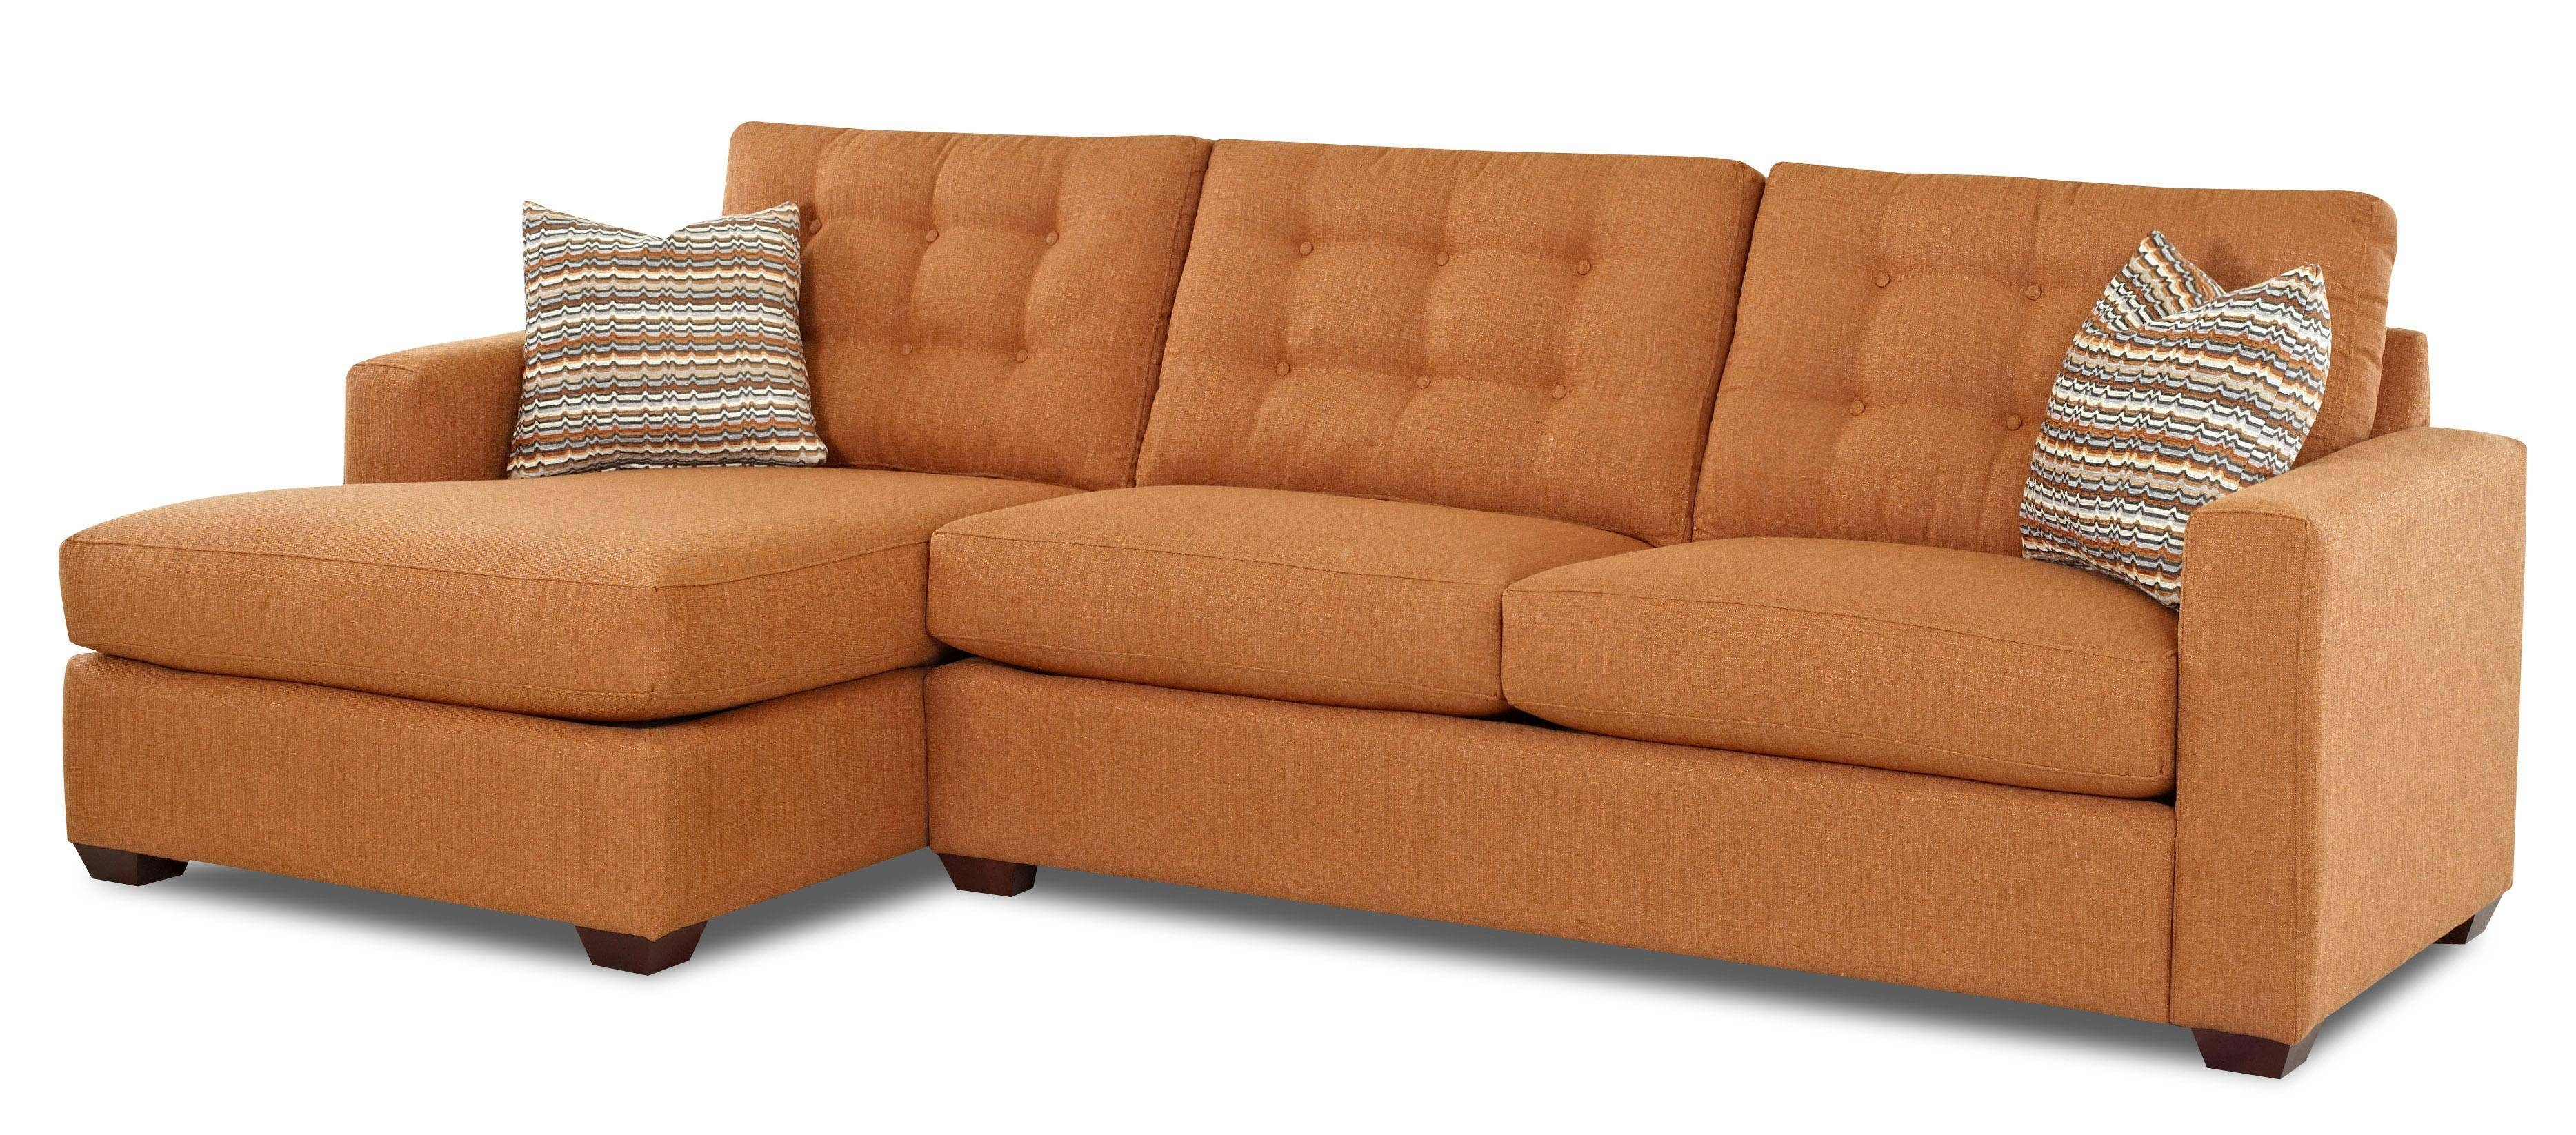 Best 30 of sofas with chaise longue for Sofa chaise longue